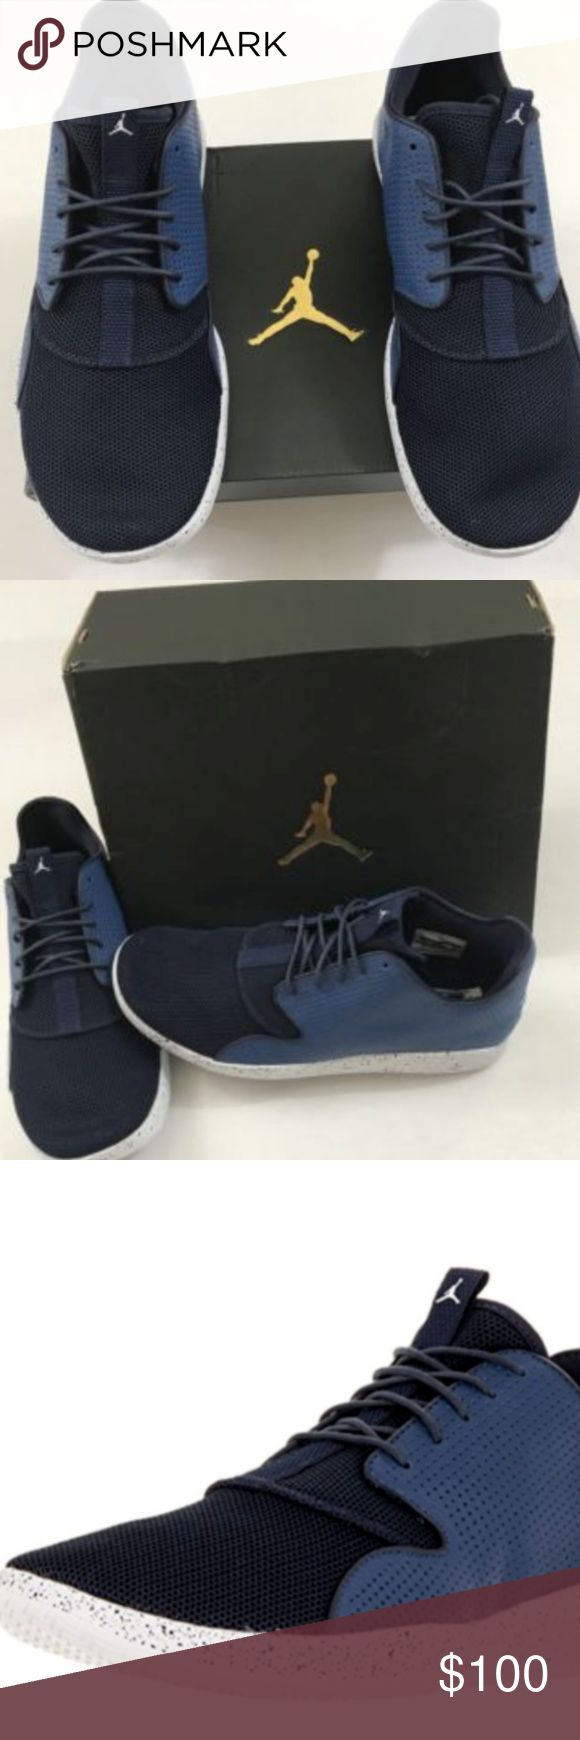 Air Jordan Eclipse 724010-401 sz 9 Nike Air Jordan Eclipse 724010-401 New Mens Low Top BBall Shoes Sneakers   size 9  100% Authentic   Brand new with box  Please see pictures for full details  ships fast and safe! Jordan Shoes Sneakers